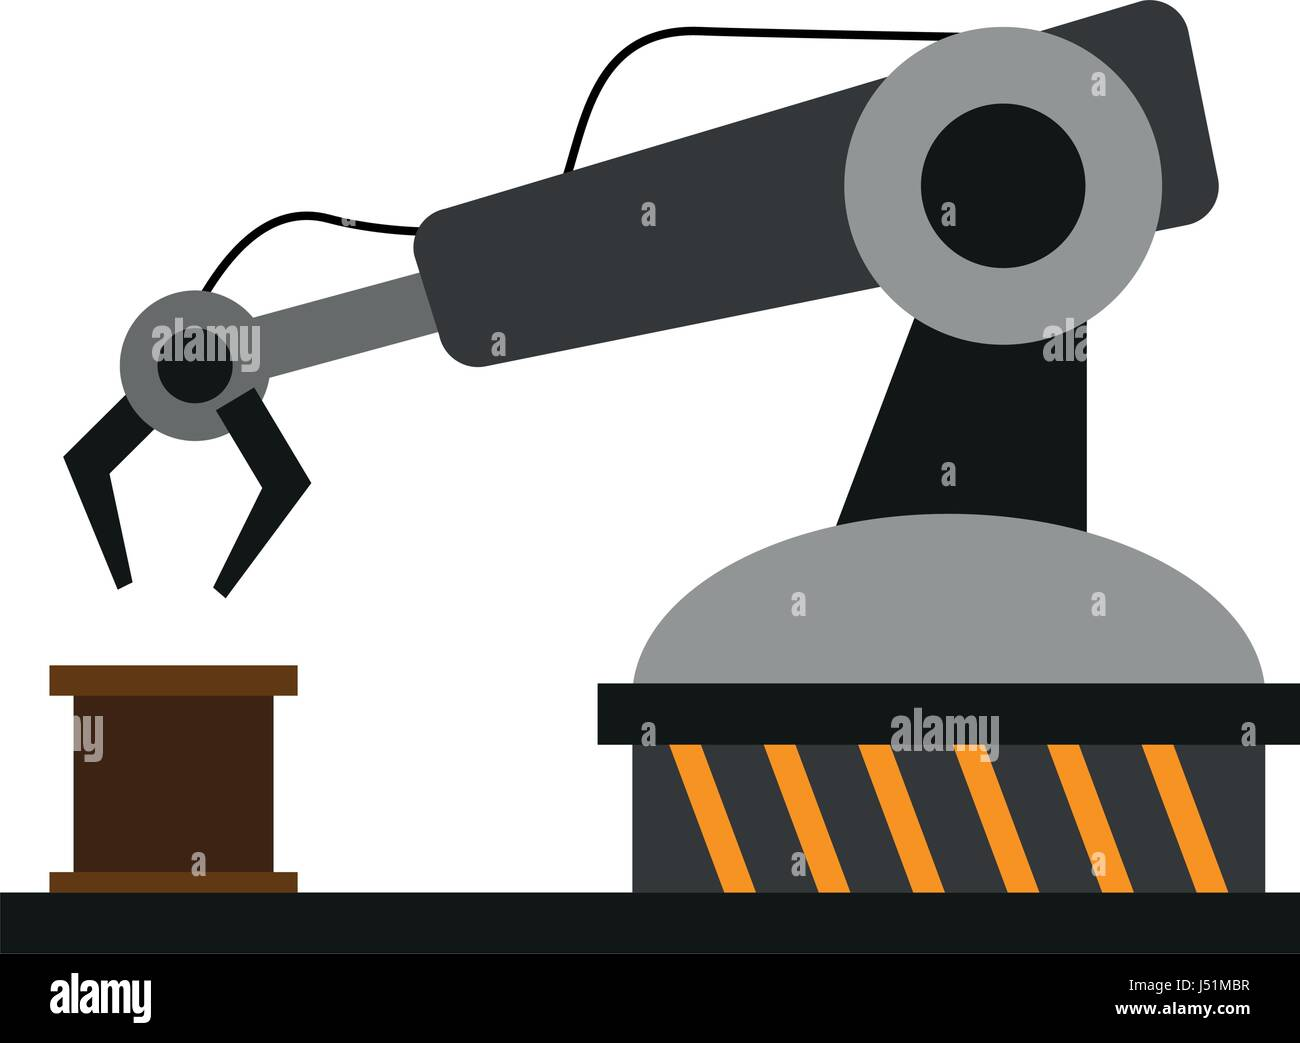 Assembly Line Industrial Machine Icon Image Stock Vector